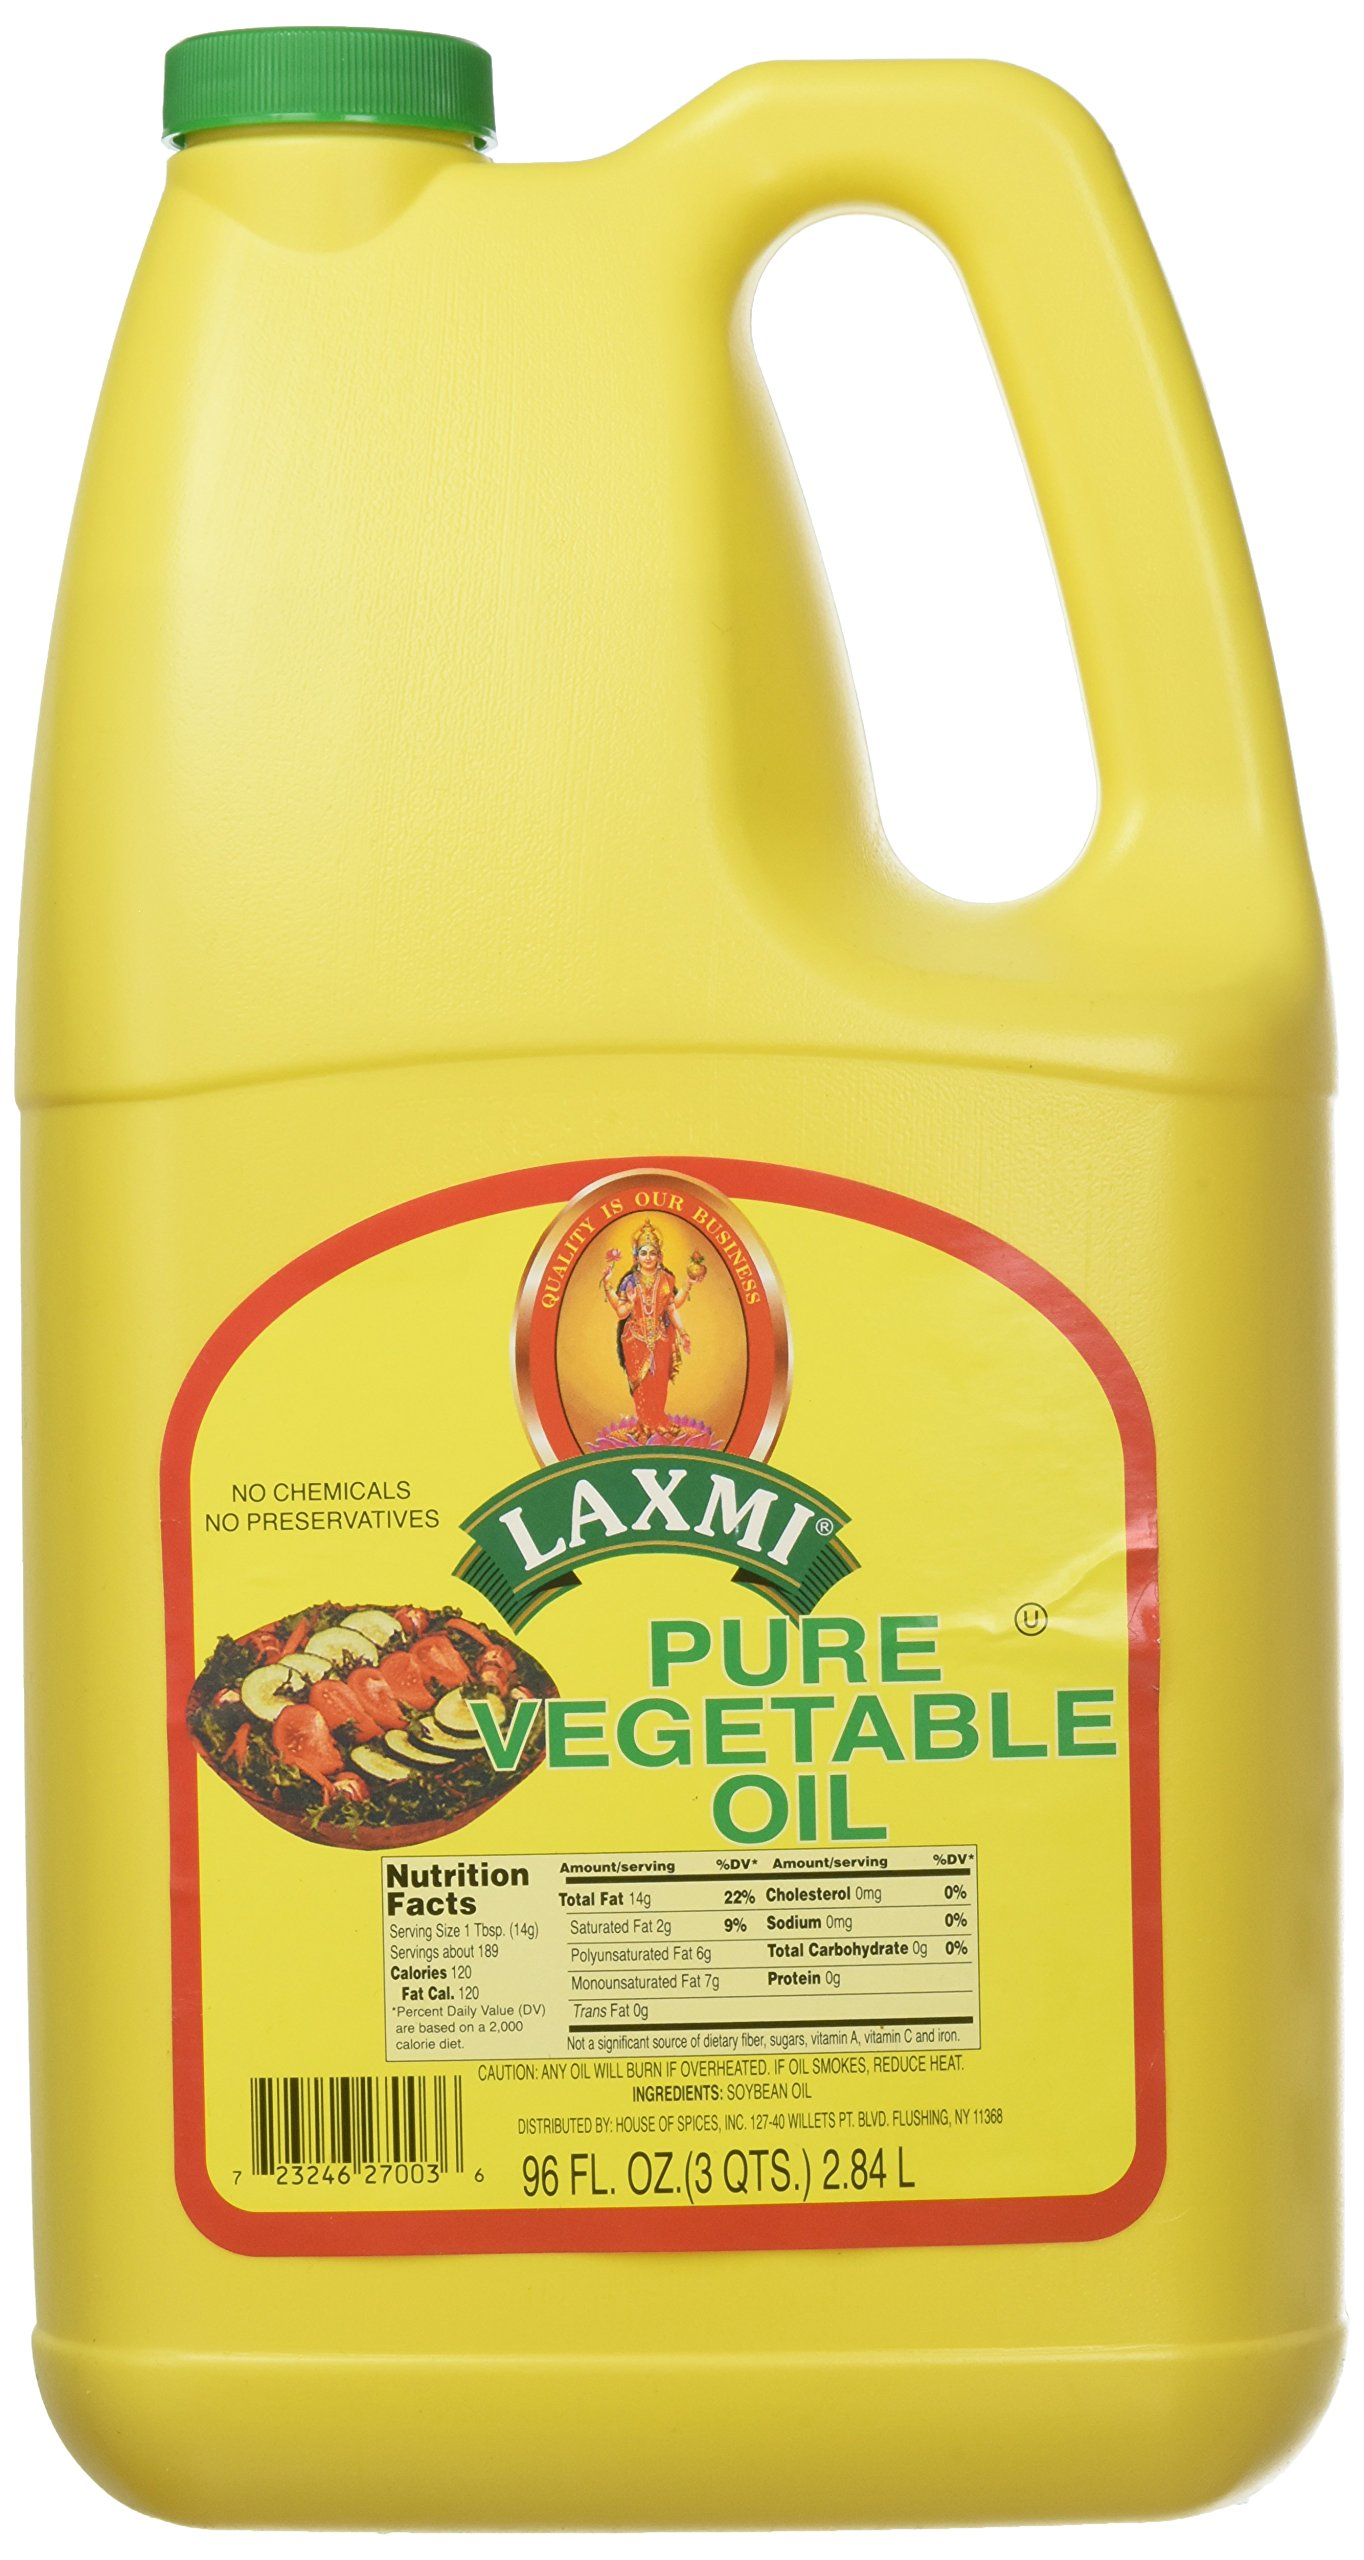 Laxmi, Pure Vegetable Soybean Oil, 2.84 Liter(ltr)